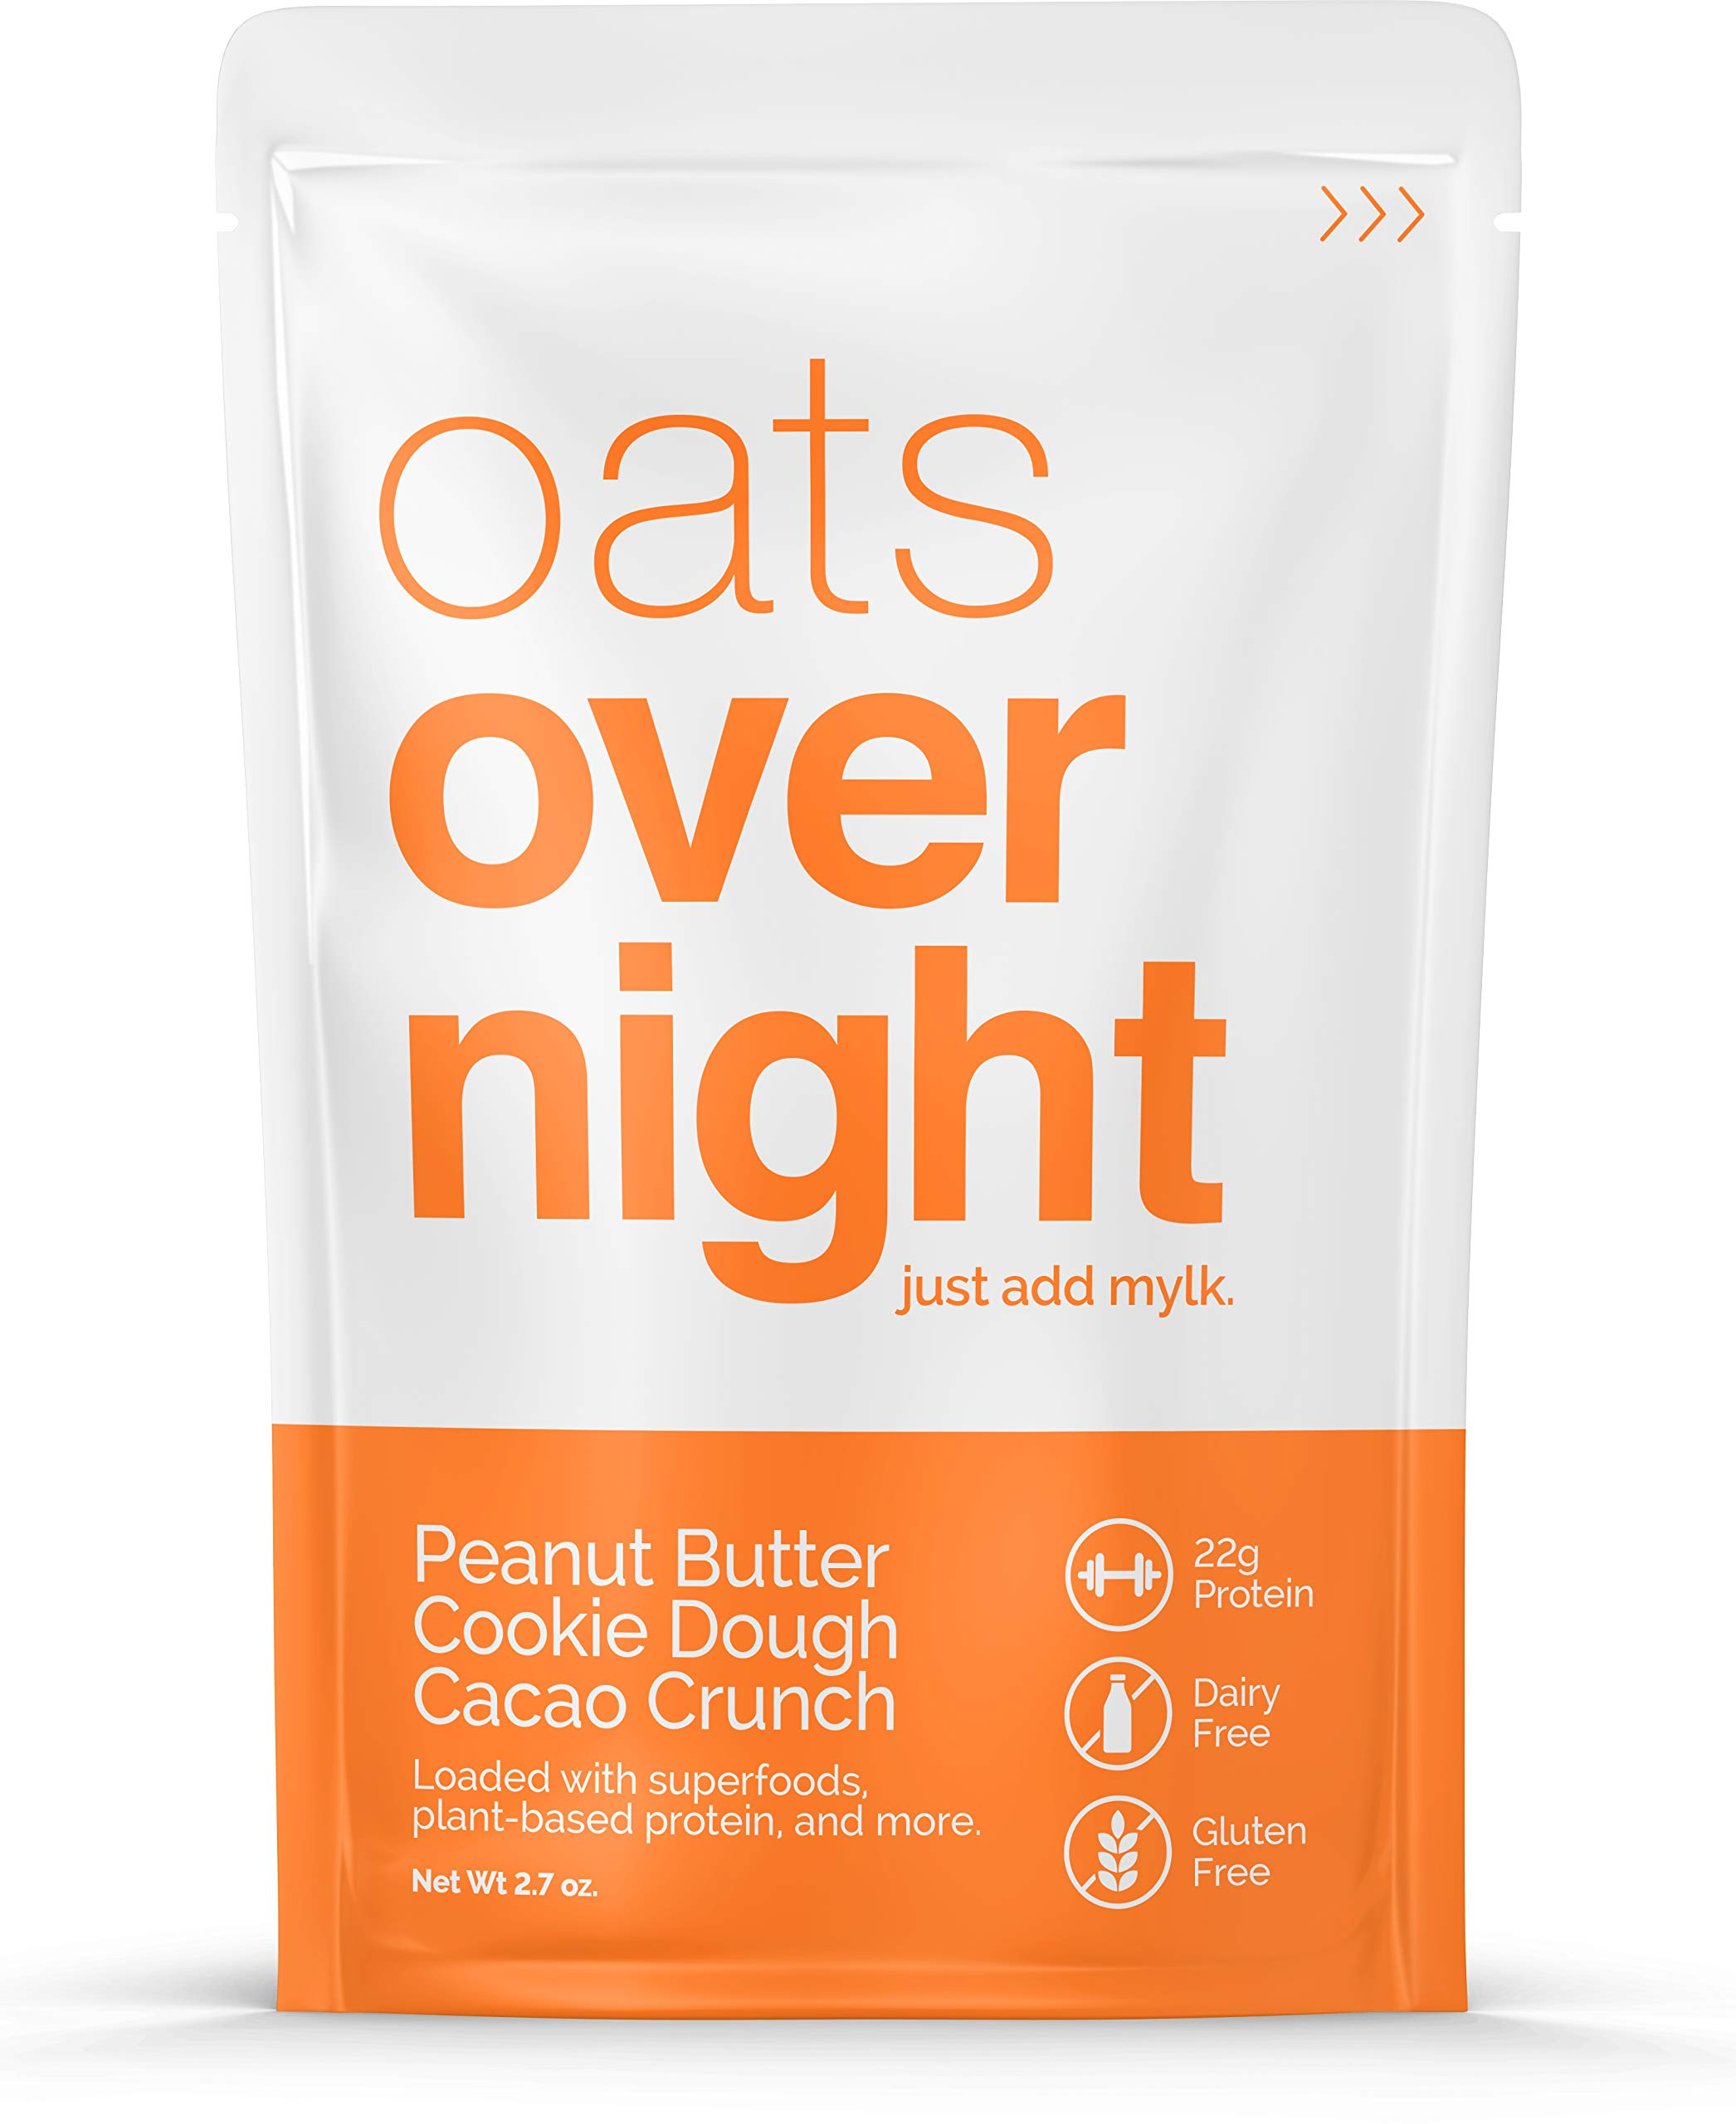 Oats Overnight Dairy-Free - Peanut Butter Cookie Dough Cacao Crunch - Premium High-Protein, Low-Sugar, Gluten-Free, Vegan Oatmeal (2.6oz per pack) (12 Pack) by Oats Overnight